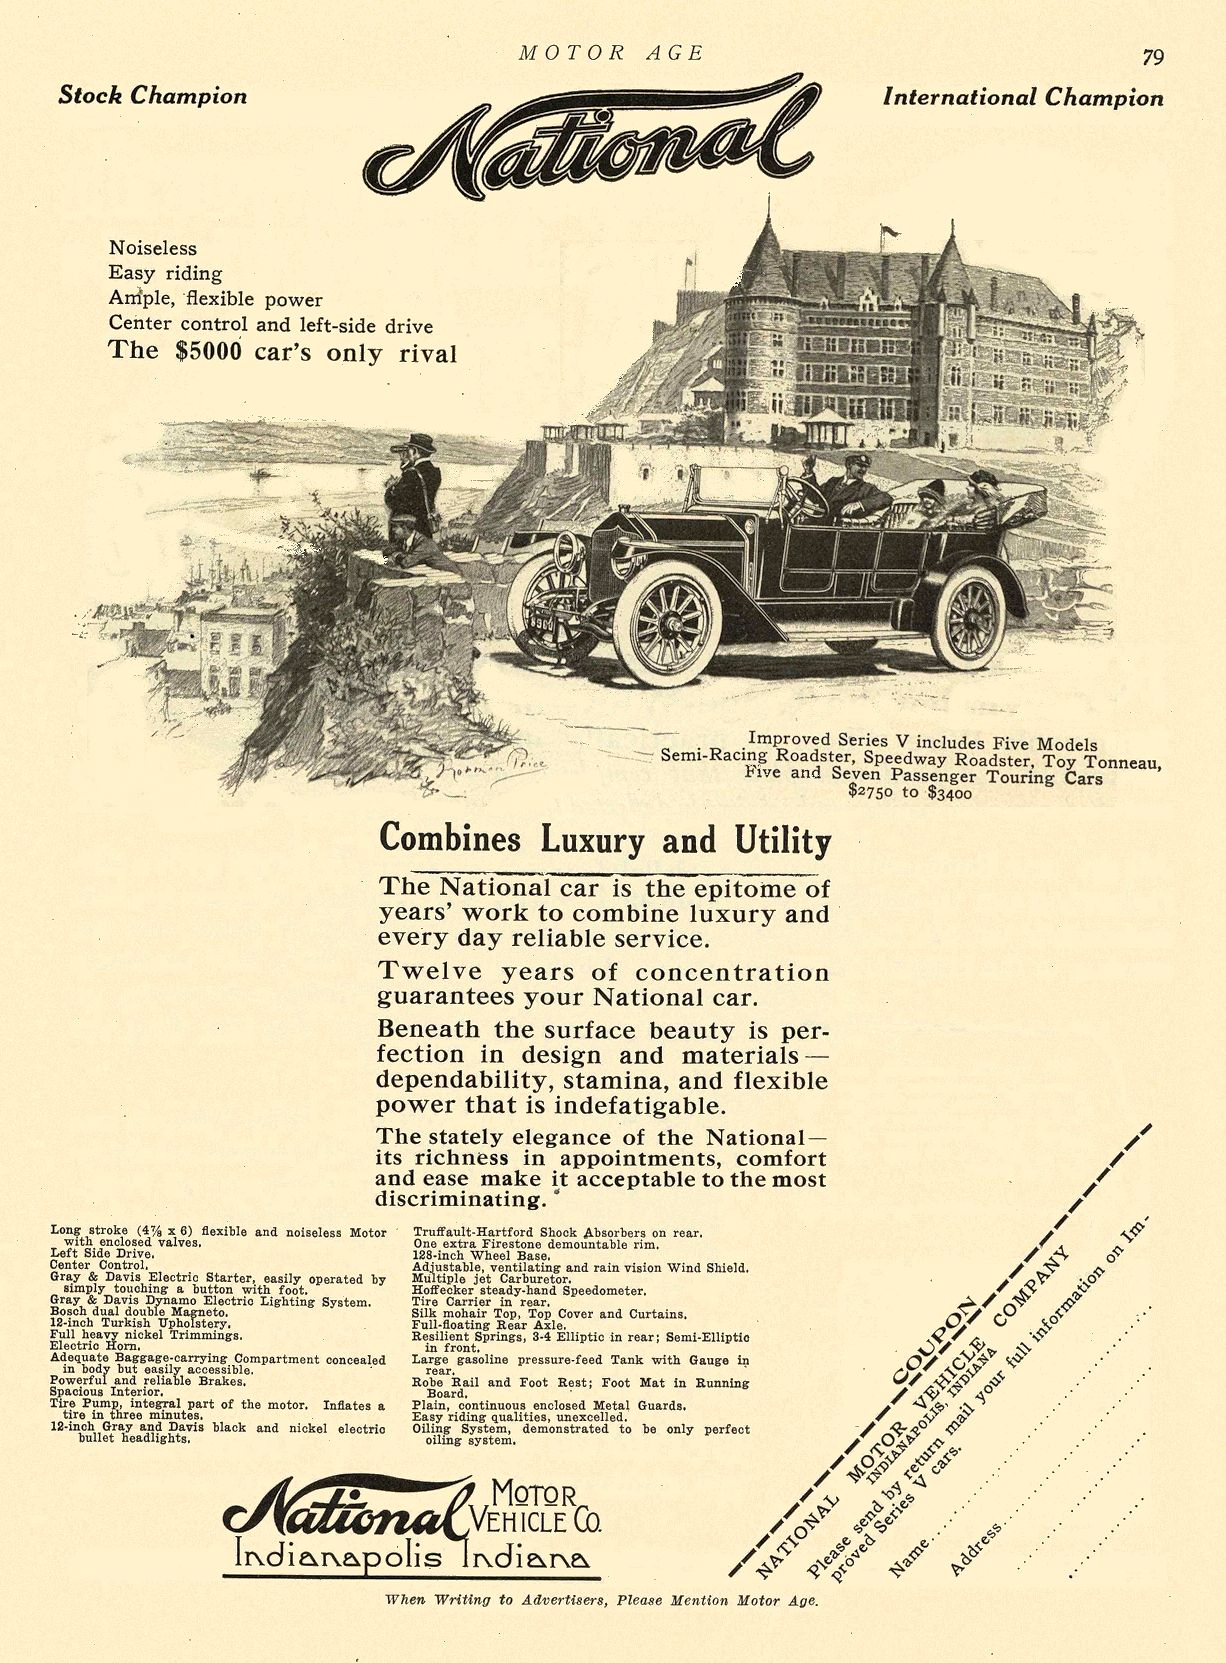 1912 12 12 NATIONAL National Combines Luxury and Utility National MOTOR VEHICLE CO. Indianapolis, IND MOTOR AGE December 12, 1912 8.25″x12″ page 79